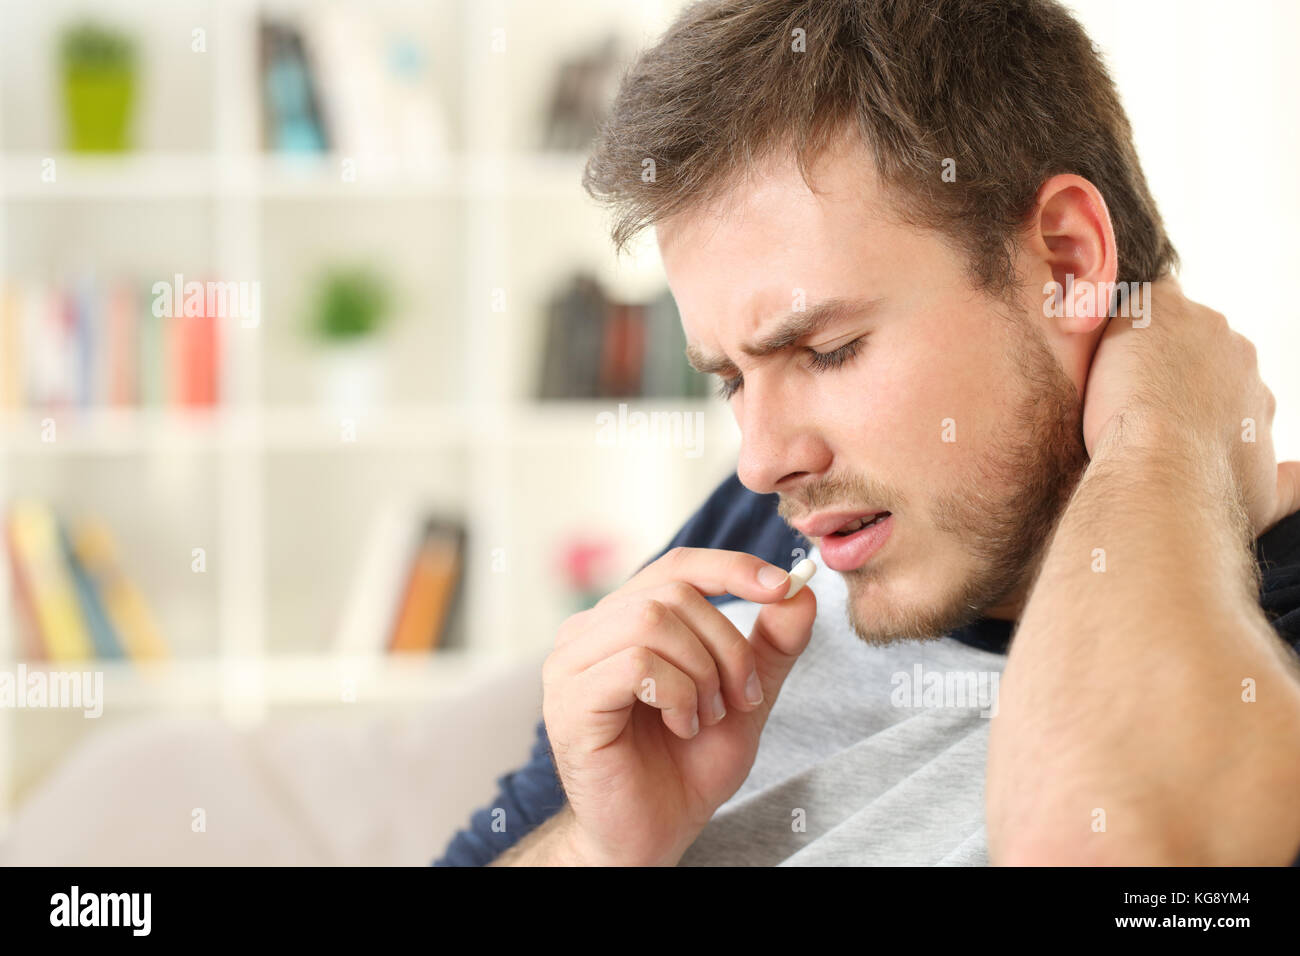 Injured man complaining taking a pill sitting on a couch in the living room in a house interior - Stock Image